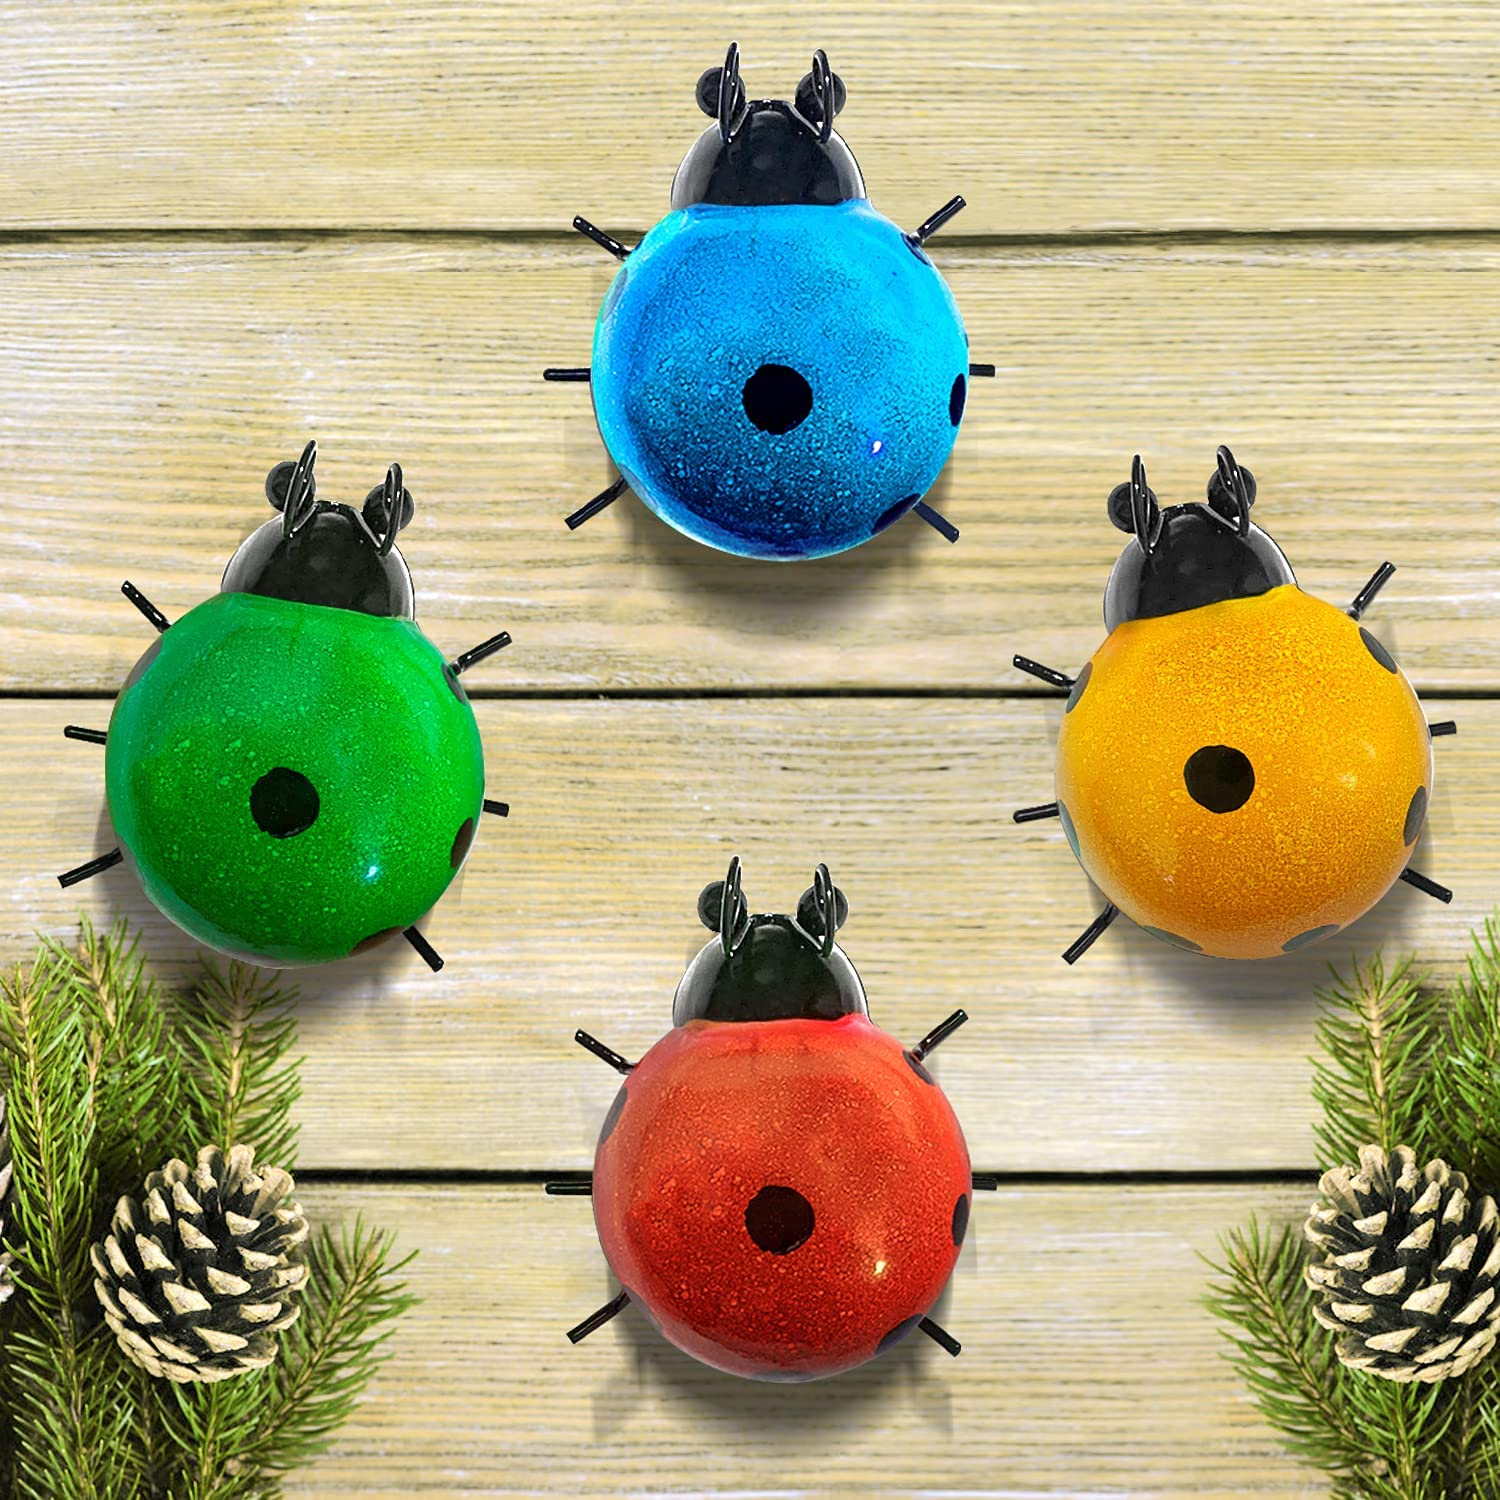 Metal Garden Art Set Of 4 Cute Lady Bugs For Your Garden, Outdoor Decorations For Patio Garden Decor For Outside, Ladybugs Outdoor Wall Sculpture For Deck Yard Art Backyard Porch Fence Gardening Gifts